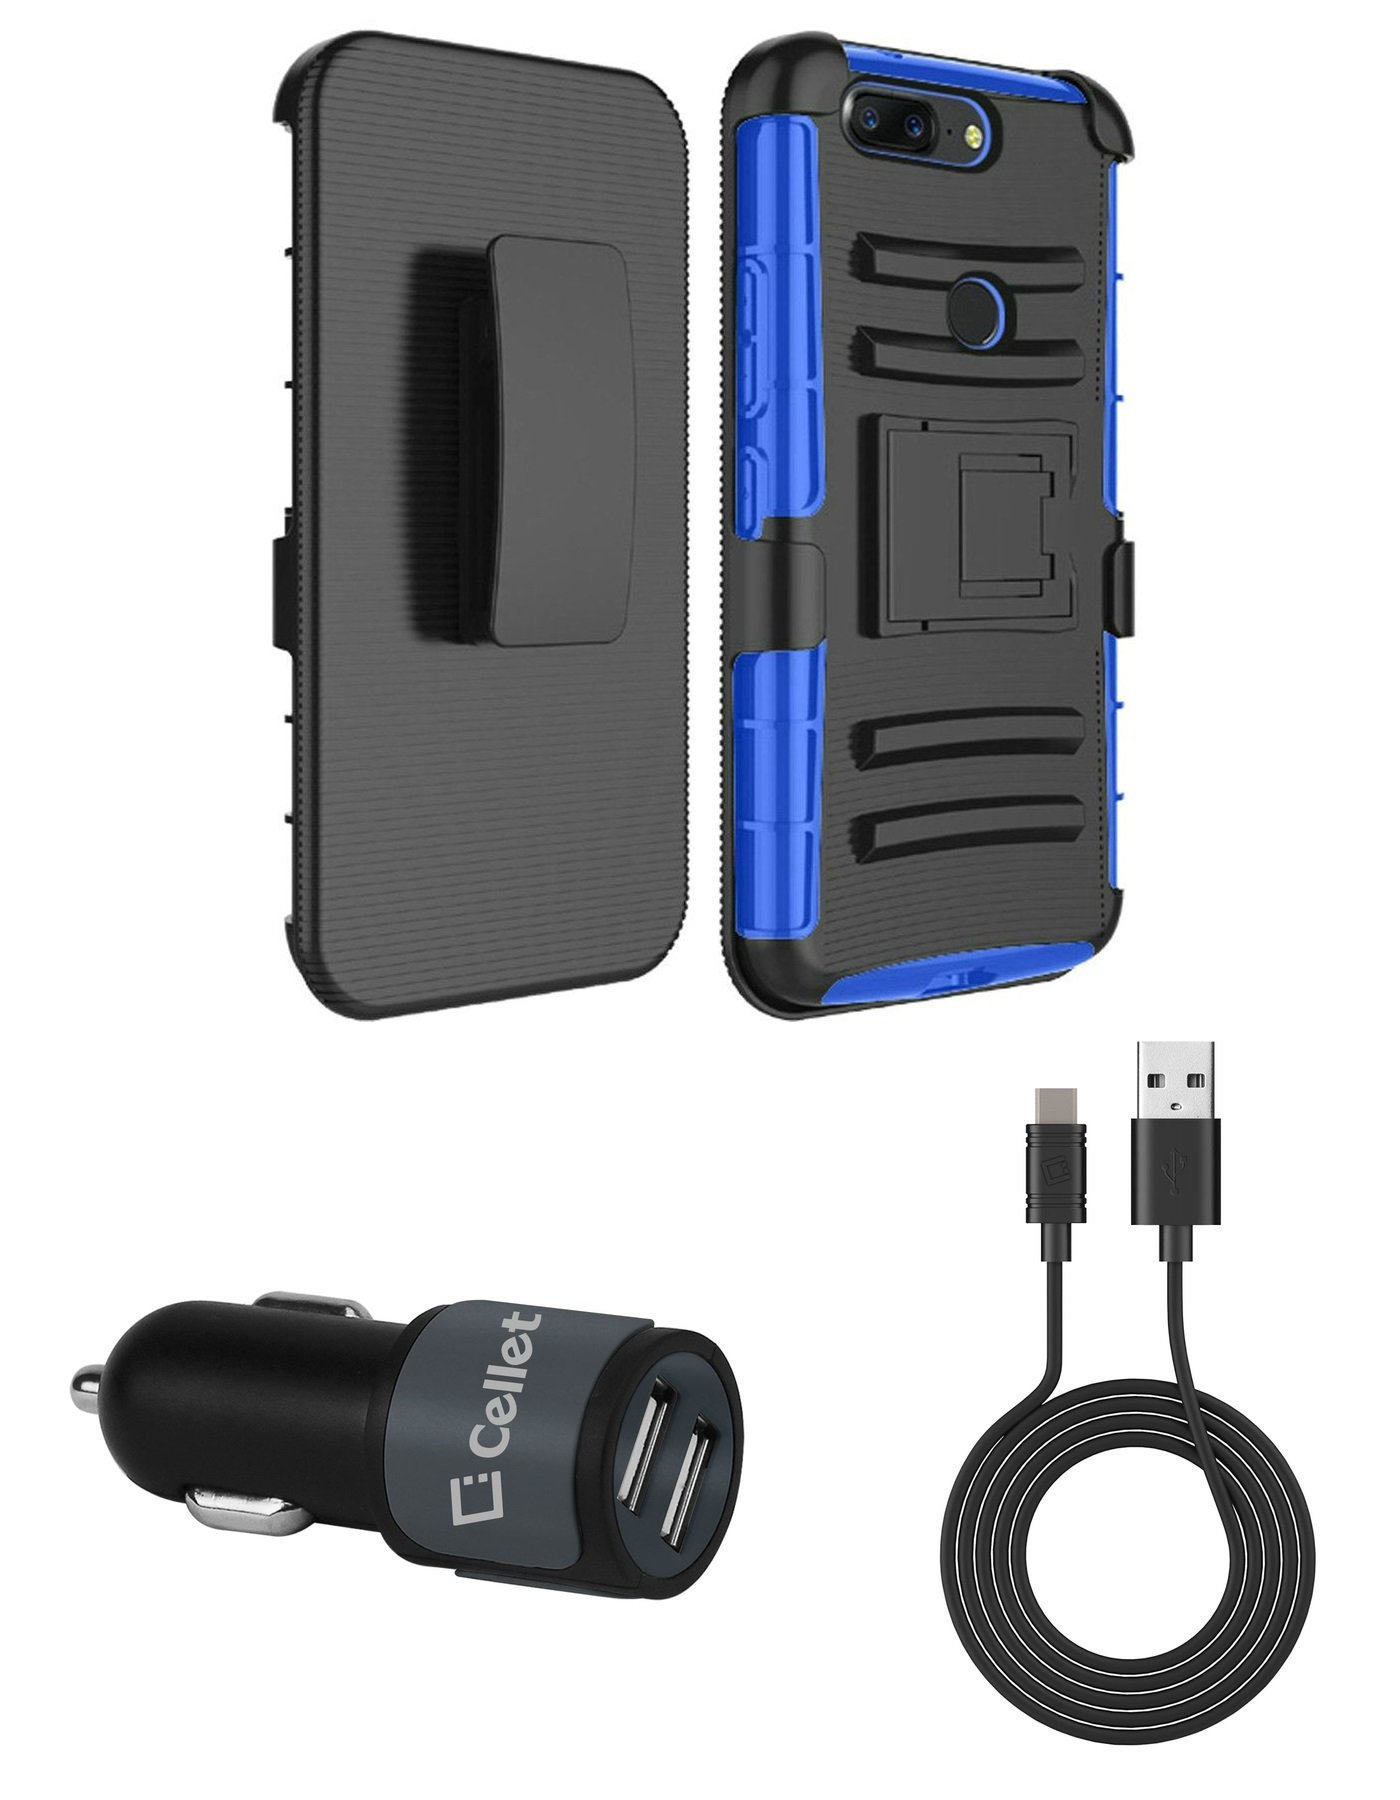 OnePlus 5T - Accessory Bundle: Dual Layer Shockproof Kickstand Belt Holster Case - (Blue), [10 Watt / 2.1 Amp] High Power Dual Car Charger with USB to Type-C (USB-C) Cable and Atom Cloth